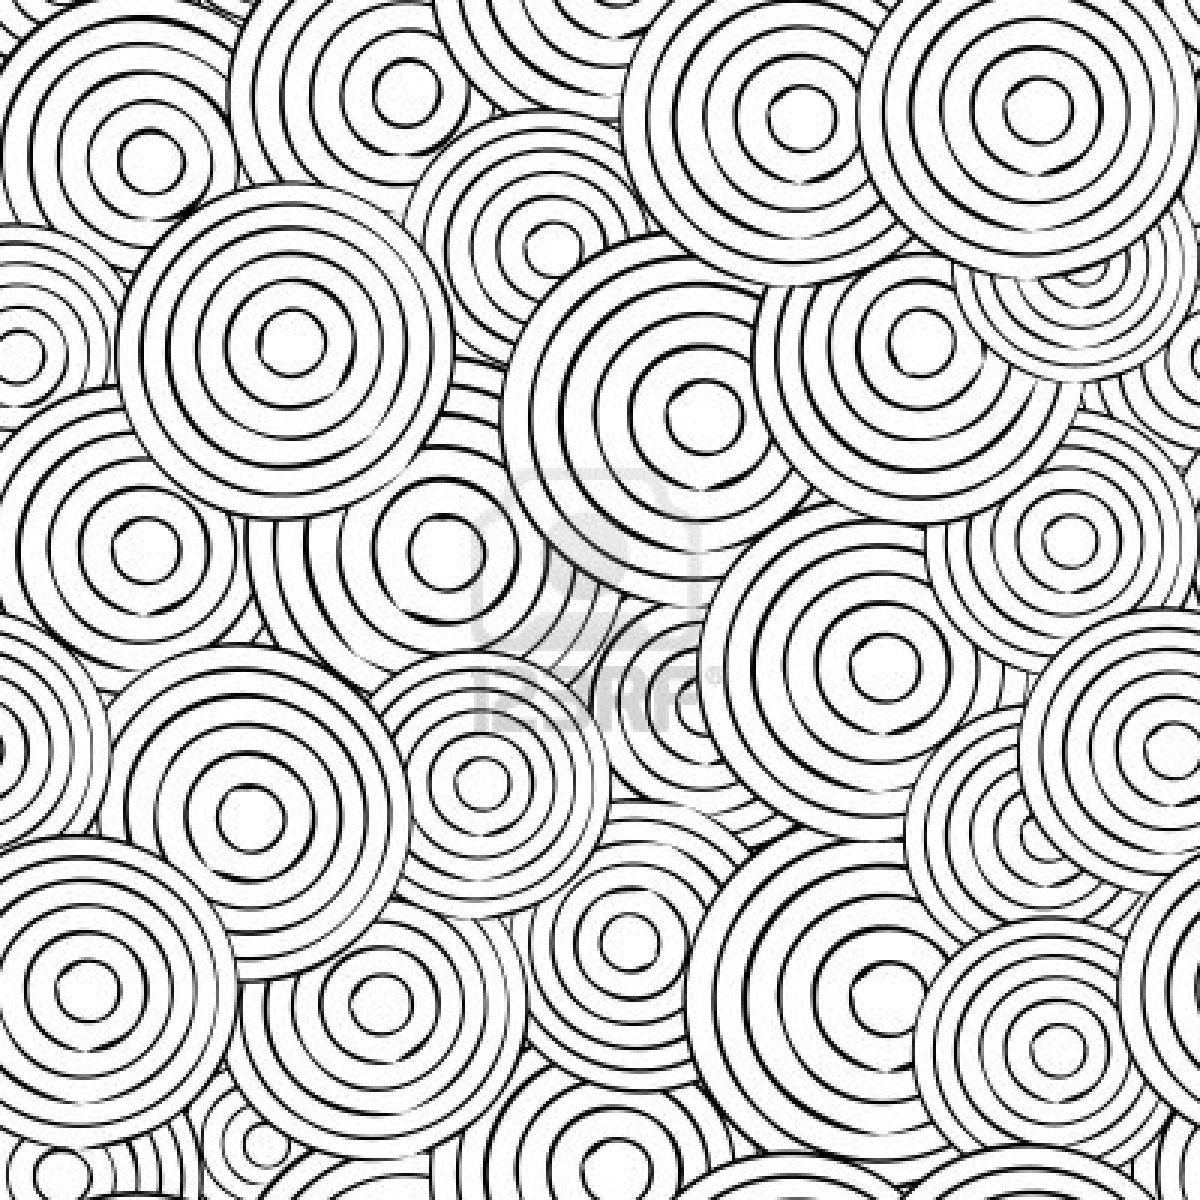 Free Printable Patterns To Color | Pattern Coloring Pages Printable - Free Printable Patterns